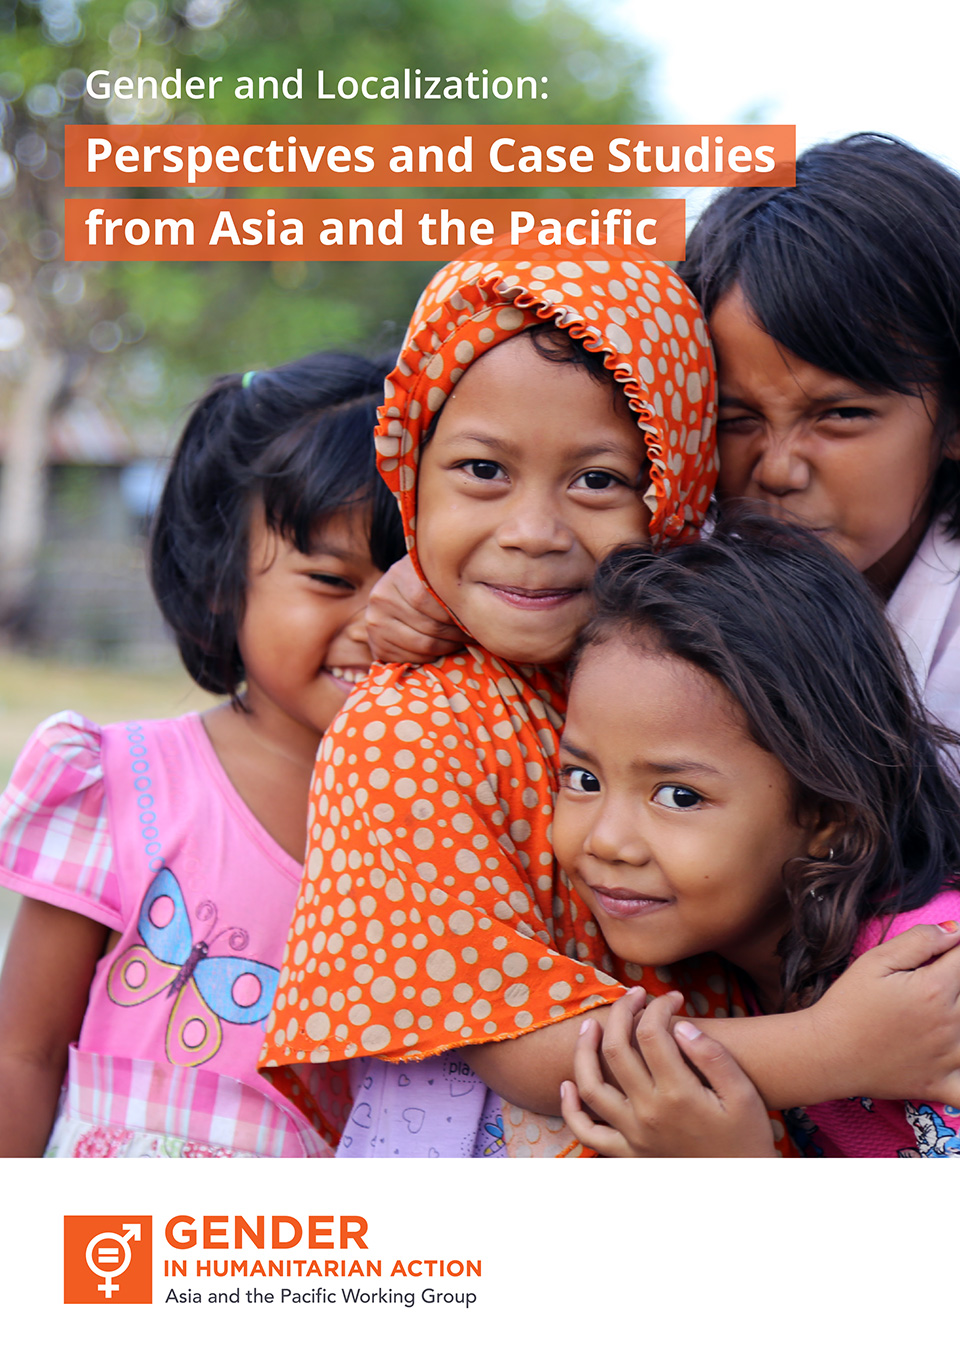 Gender and Localization: Perspectives and Case Studies from Asia and the Pacific